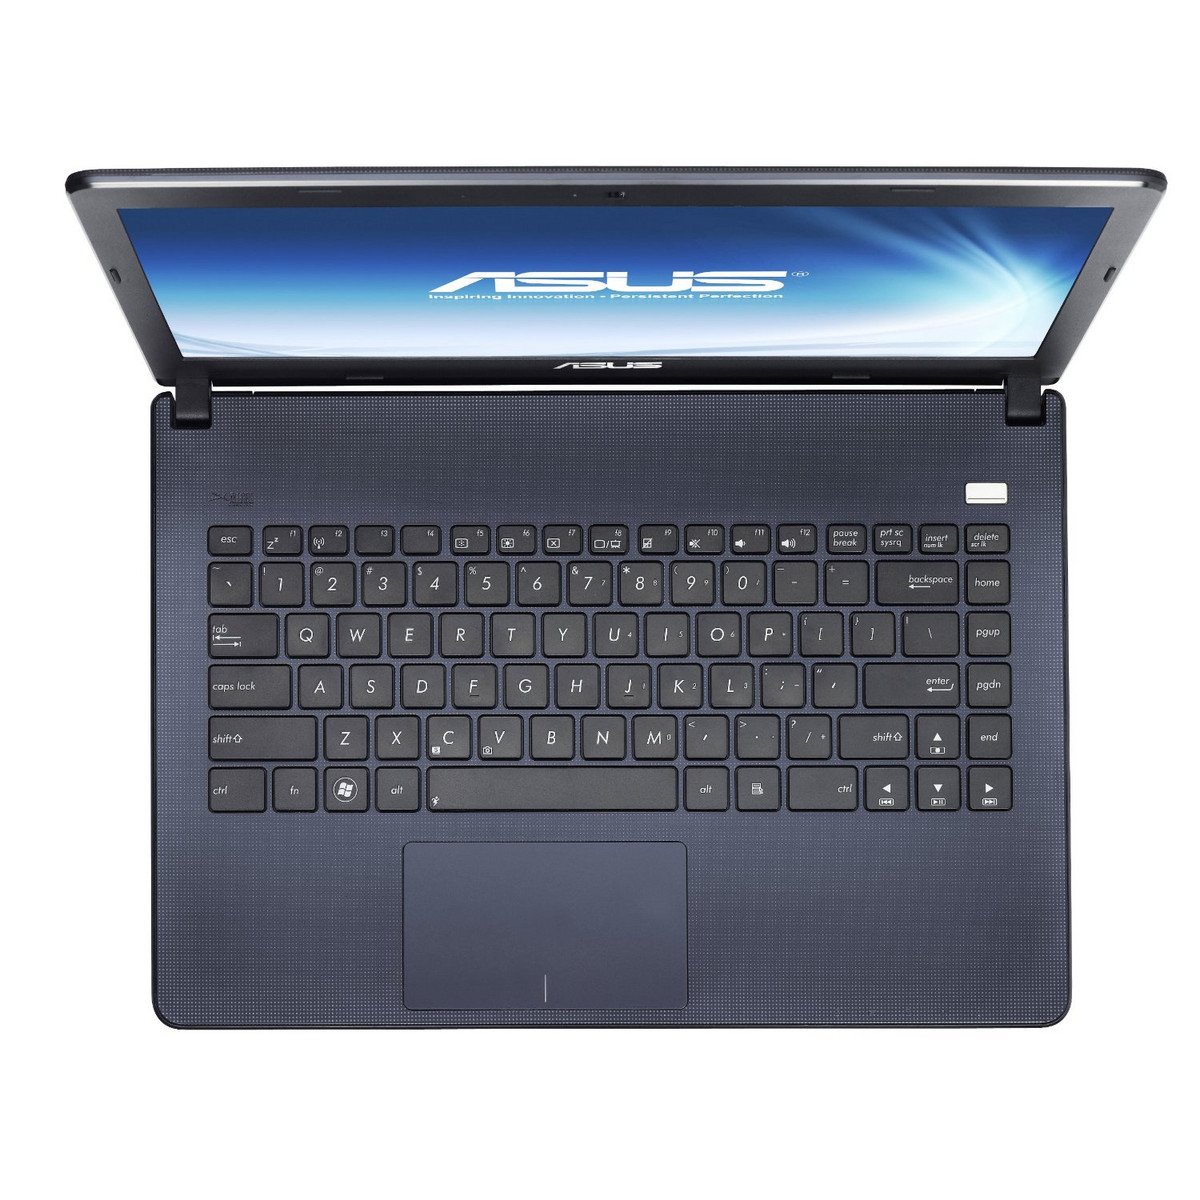 ASUS X401A NOTEBOOK INTEL DISPLAY DRIVER DOWNLOAD